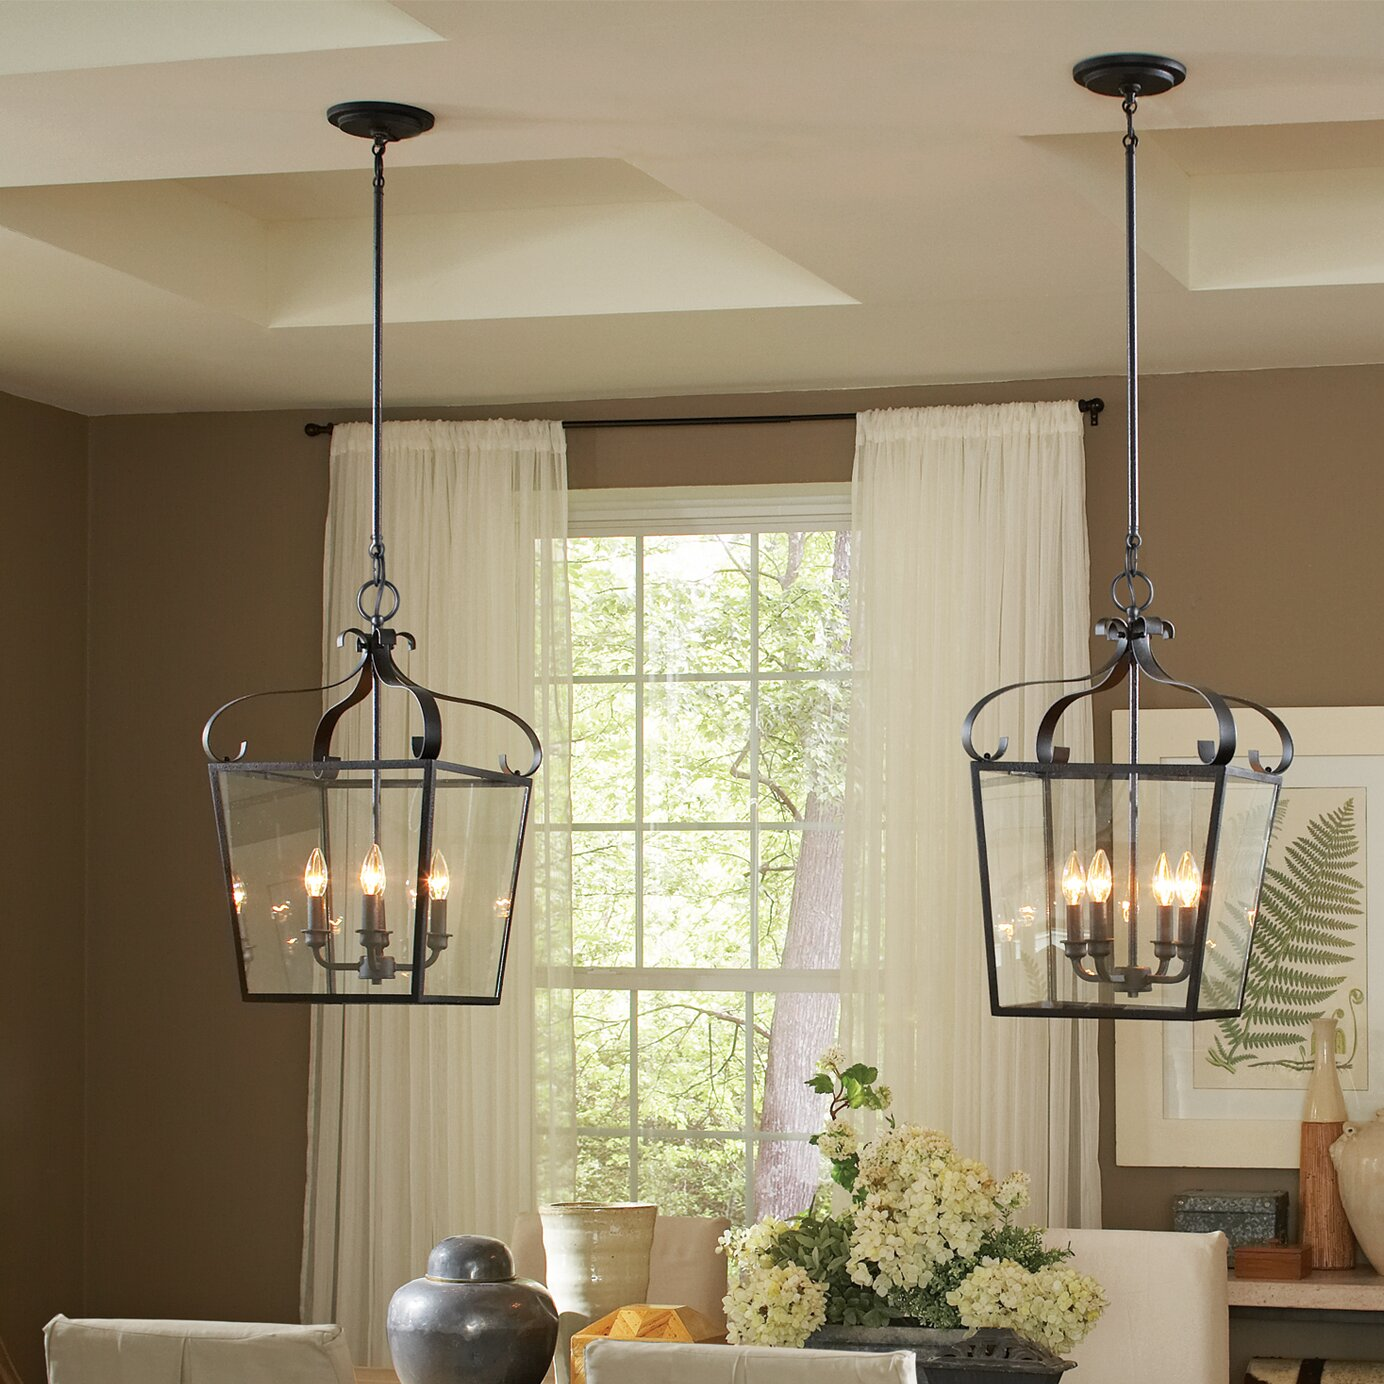 Foyer Ceiling Queen : Sea gull lighting lockheart light foyer lantern pendant